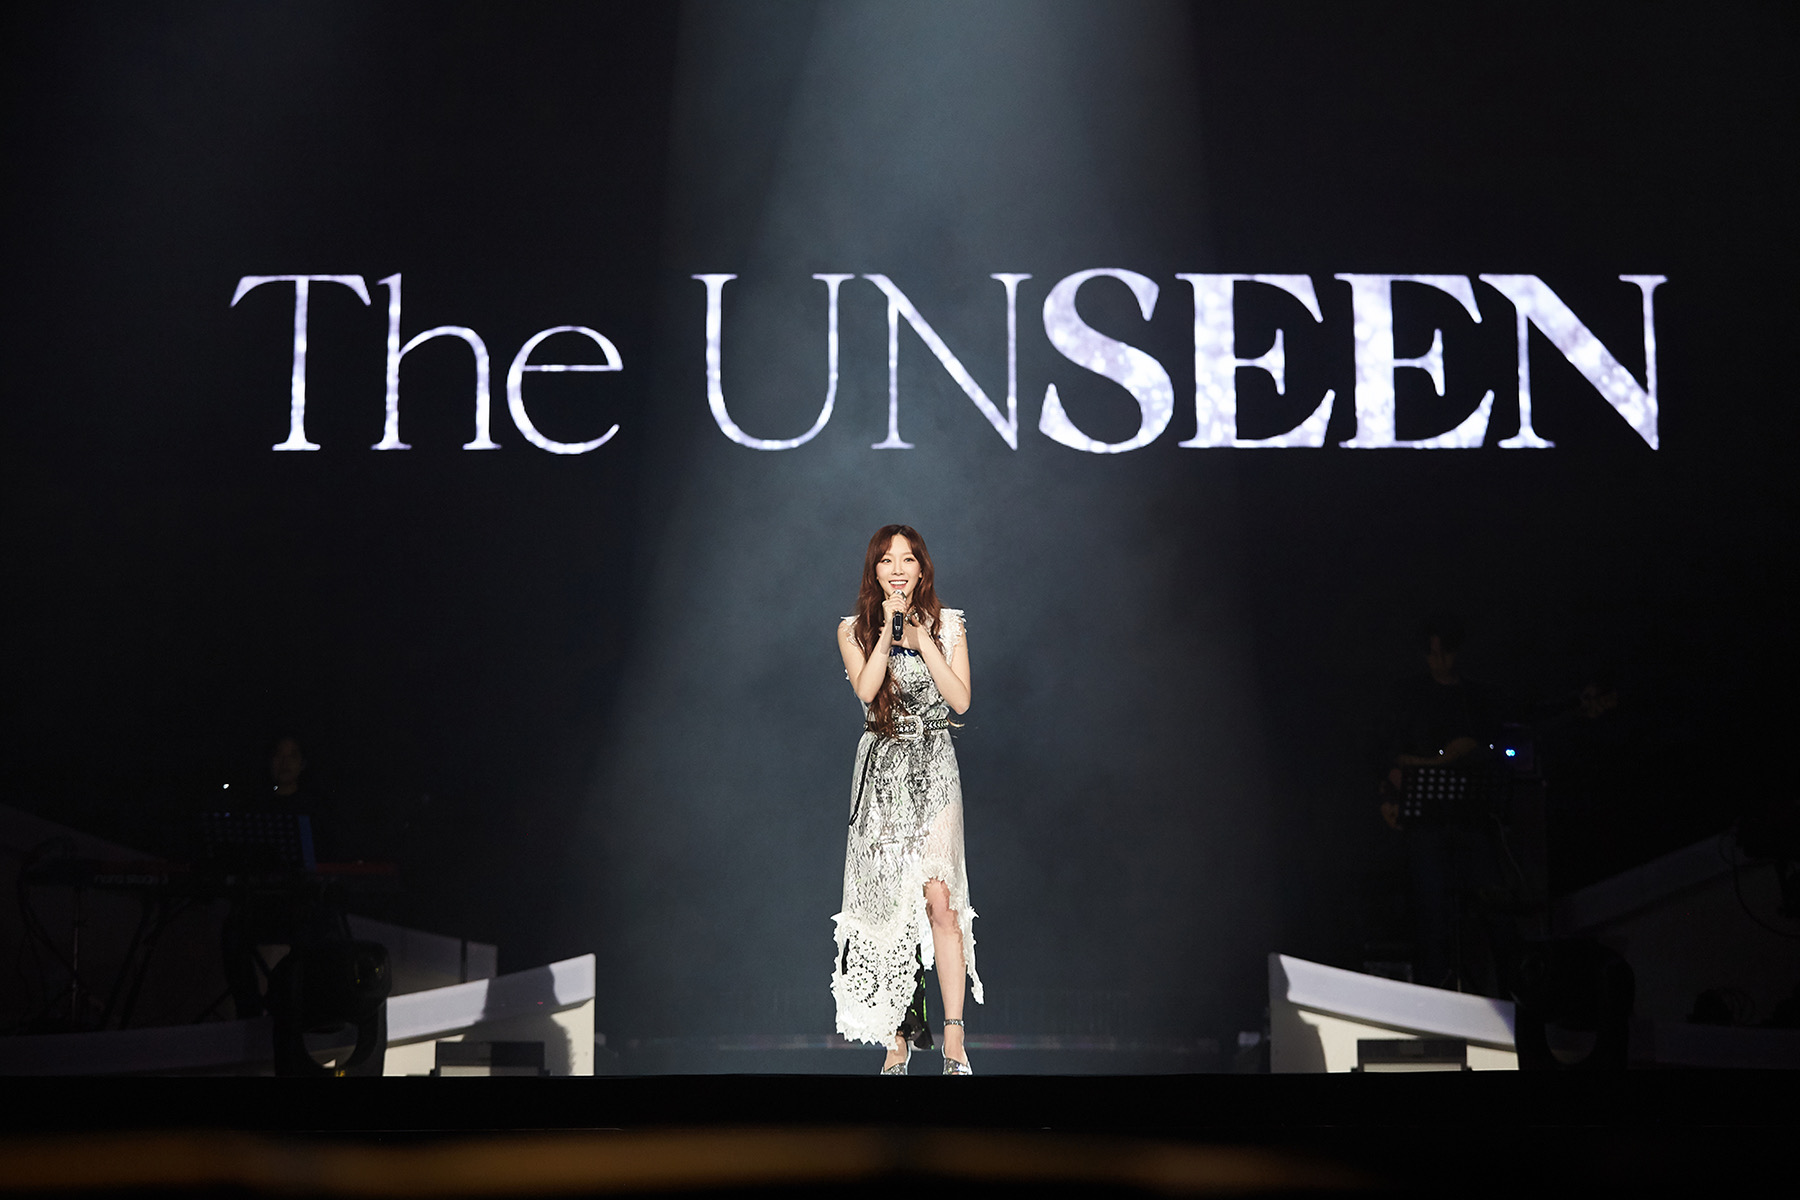 Taeyeon The Unseen Concert – Seoul – Undated